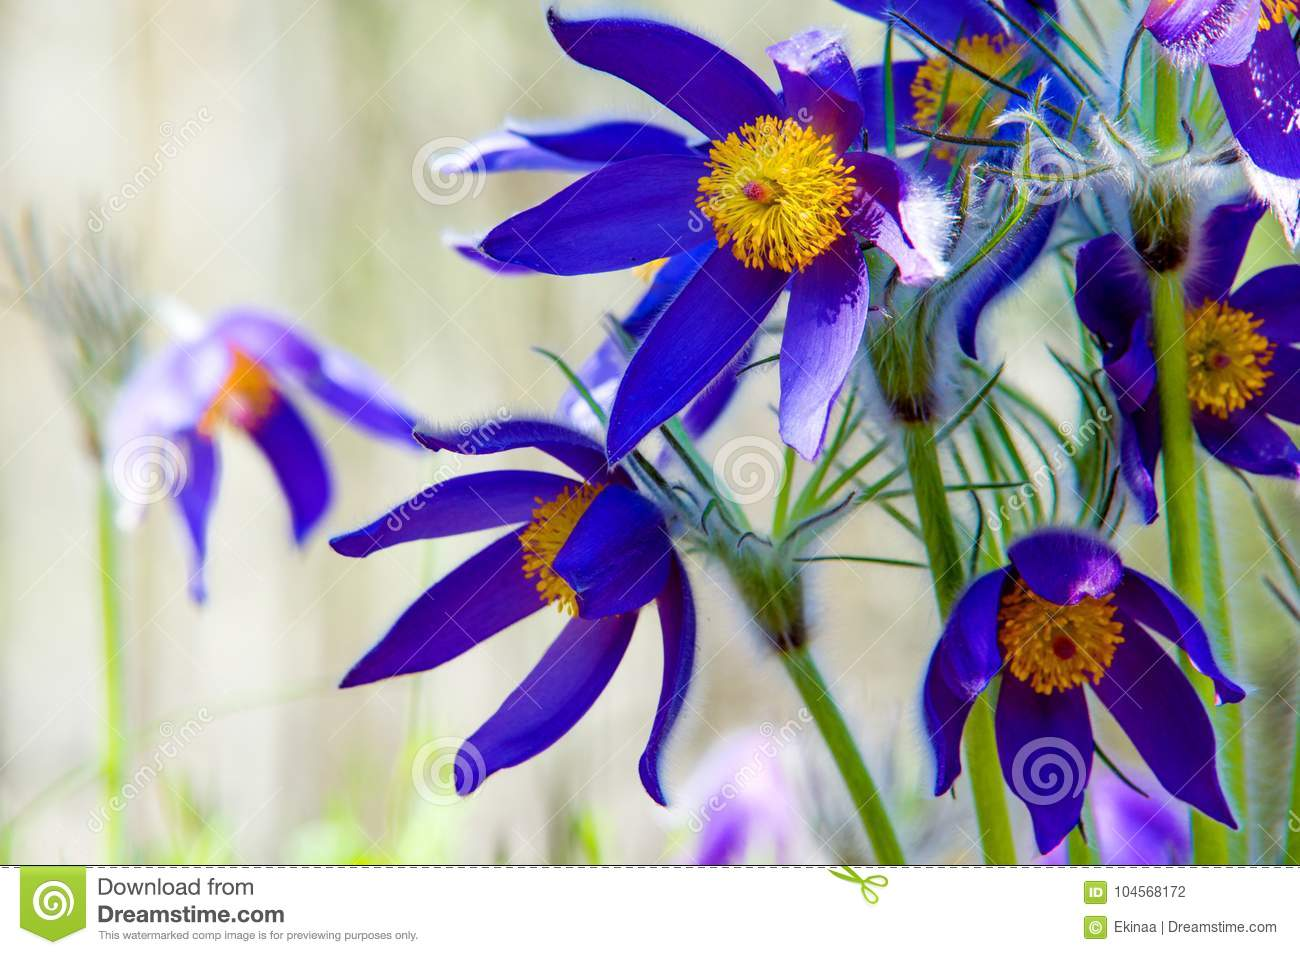 Spring landscape flowers growing in the wild spring flower pul spring landscape flowers growing in the wild spring flower pulsatilla common names include pasque flower or pasqueflower wind flower prairie crocus mightylinksfo